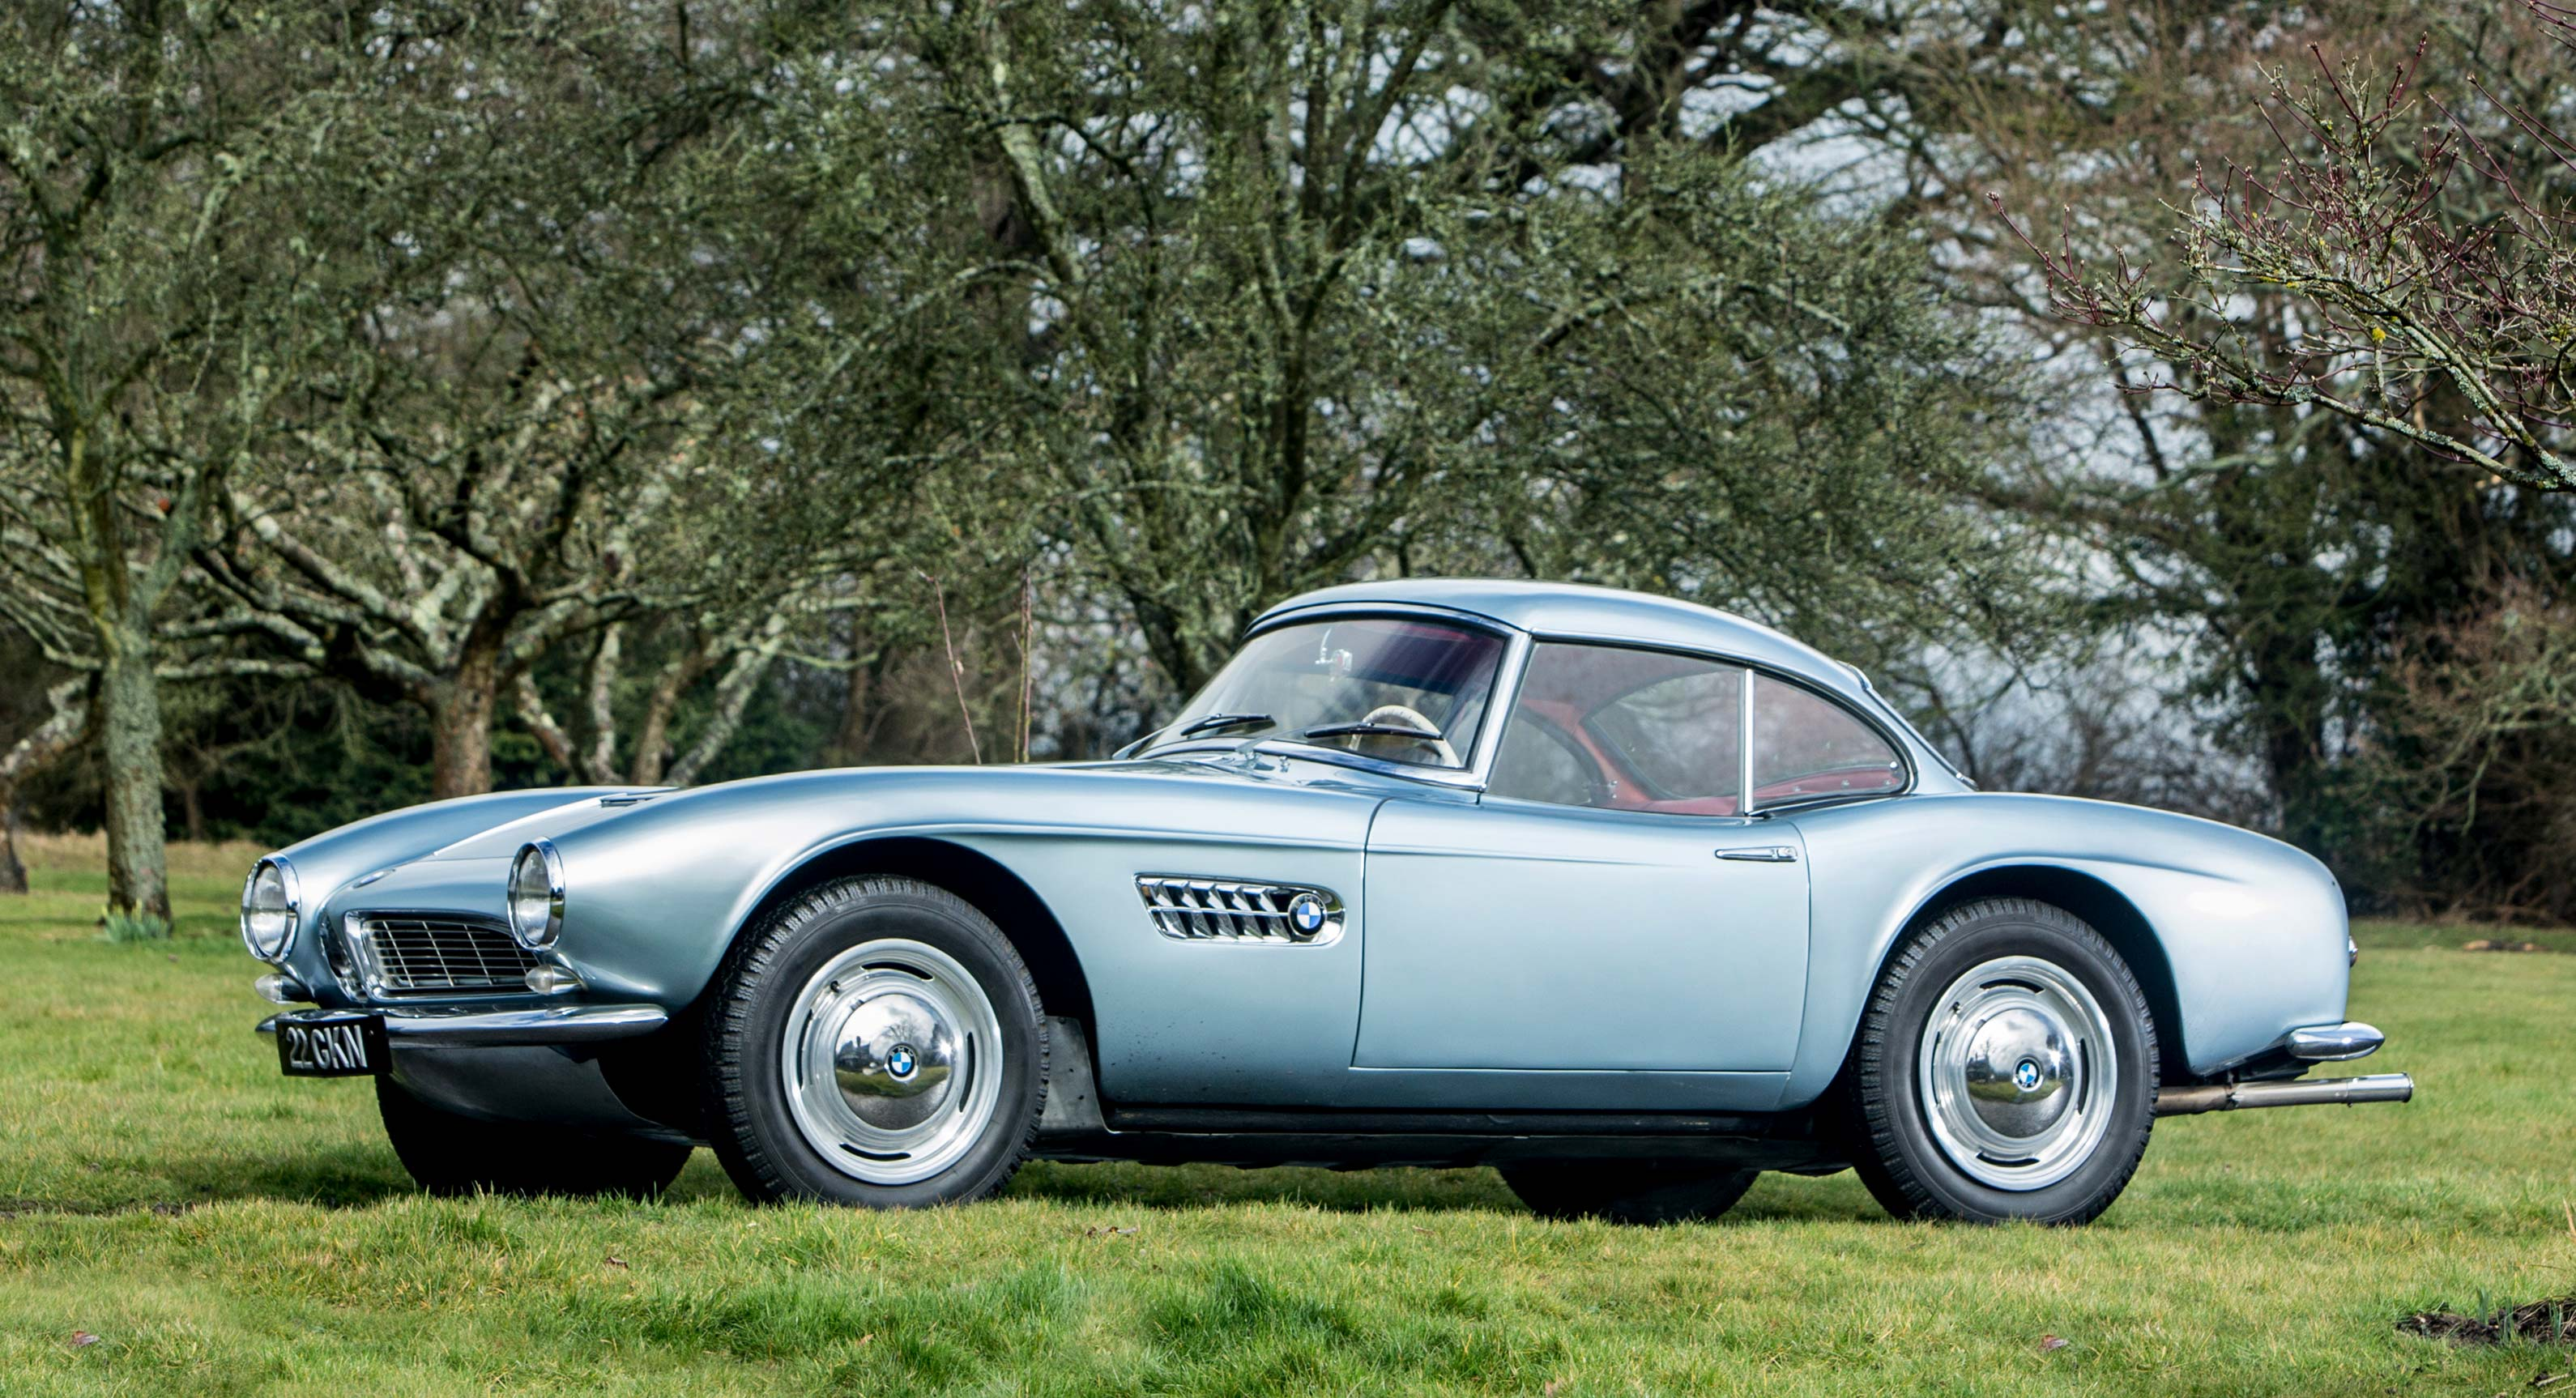 John Surtees' BMW 507 Roadster Can Be Yours For Nearly $3